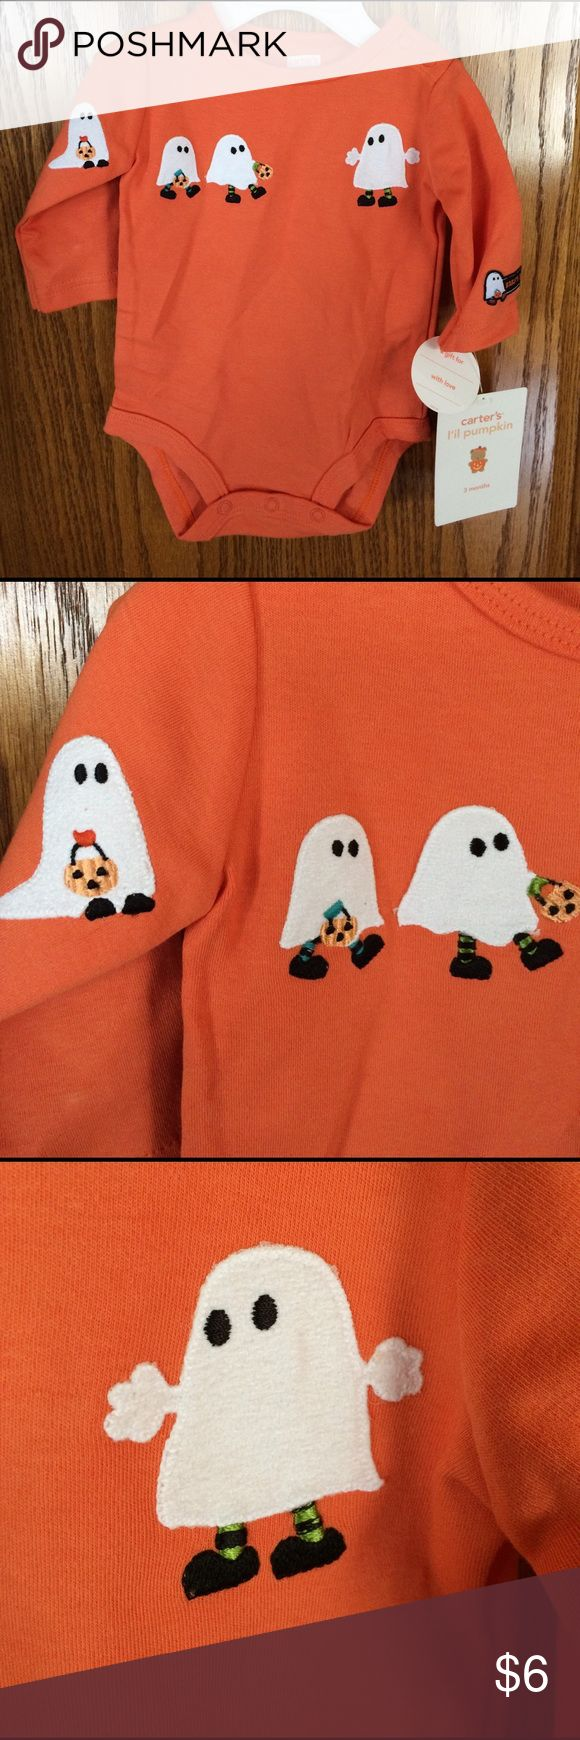 Carters Halloween Onesie Size 3 months. NWT. Carters Halloween Onesie Size 3 months 8-12.5 lbs. NWT. Ghosts are so fuzzy and cute!! Smoke free home. Carter's One Pieces Bodysuits